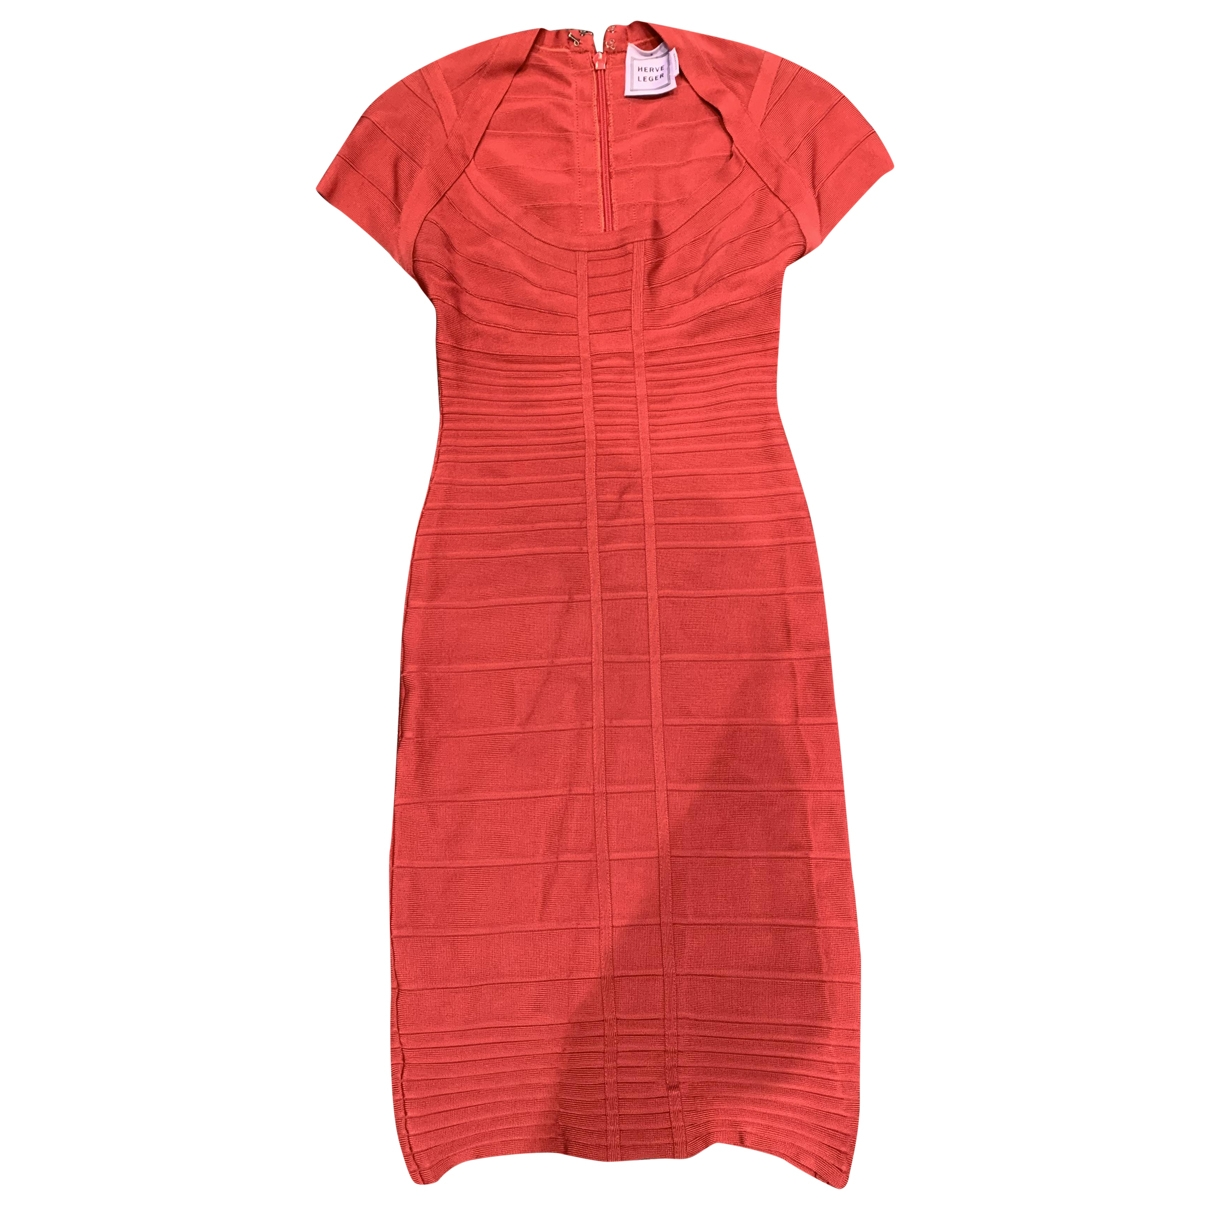 Herve Leger \N Kleid in  Rot Polyester